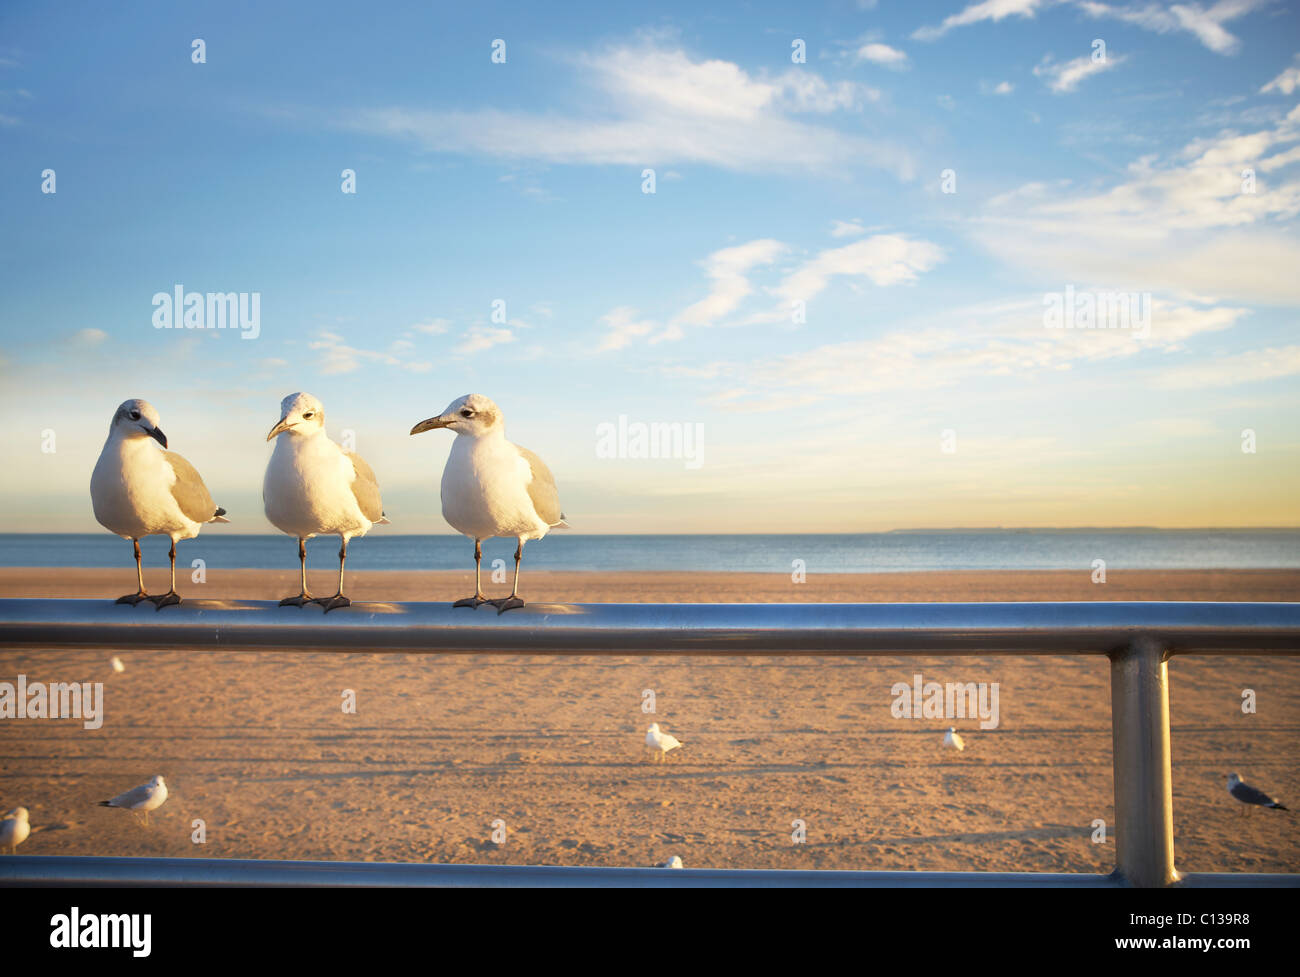 USA, New York City, Coney Island, trois mouettes perchées sur rambarde Photo Stock